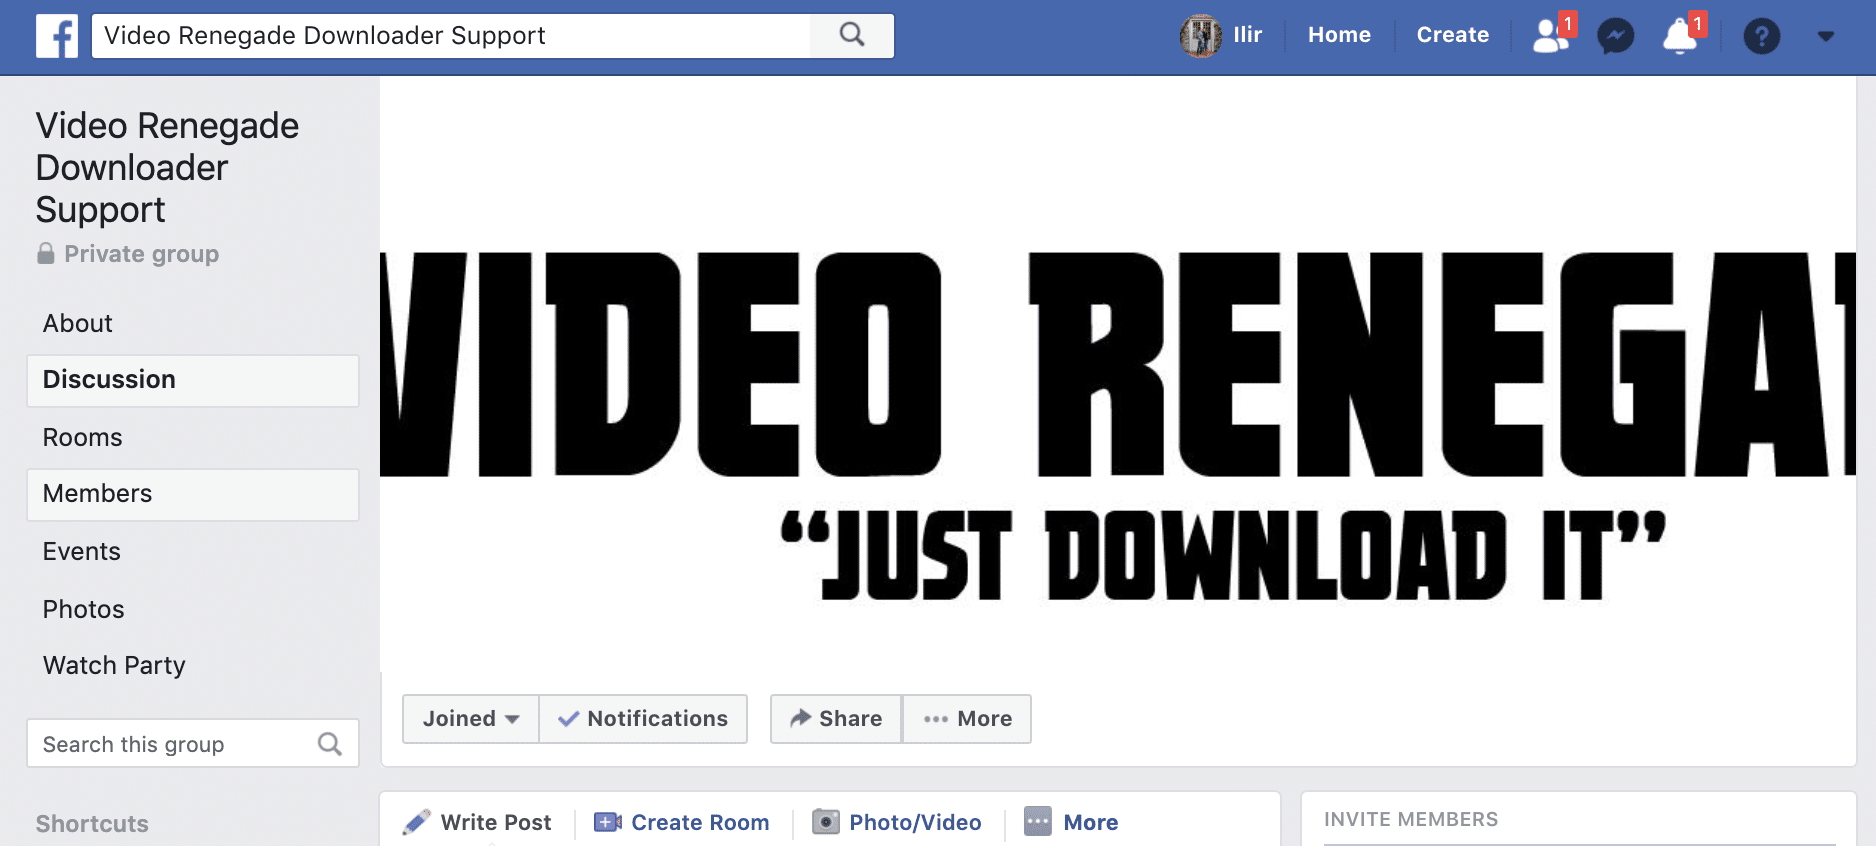 facebook community for Video Renegade Downloader users